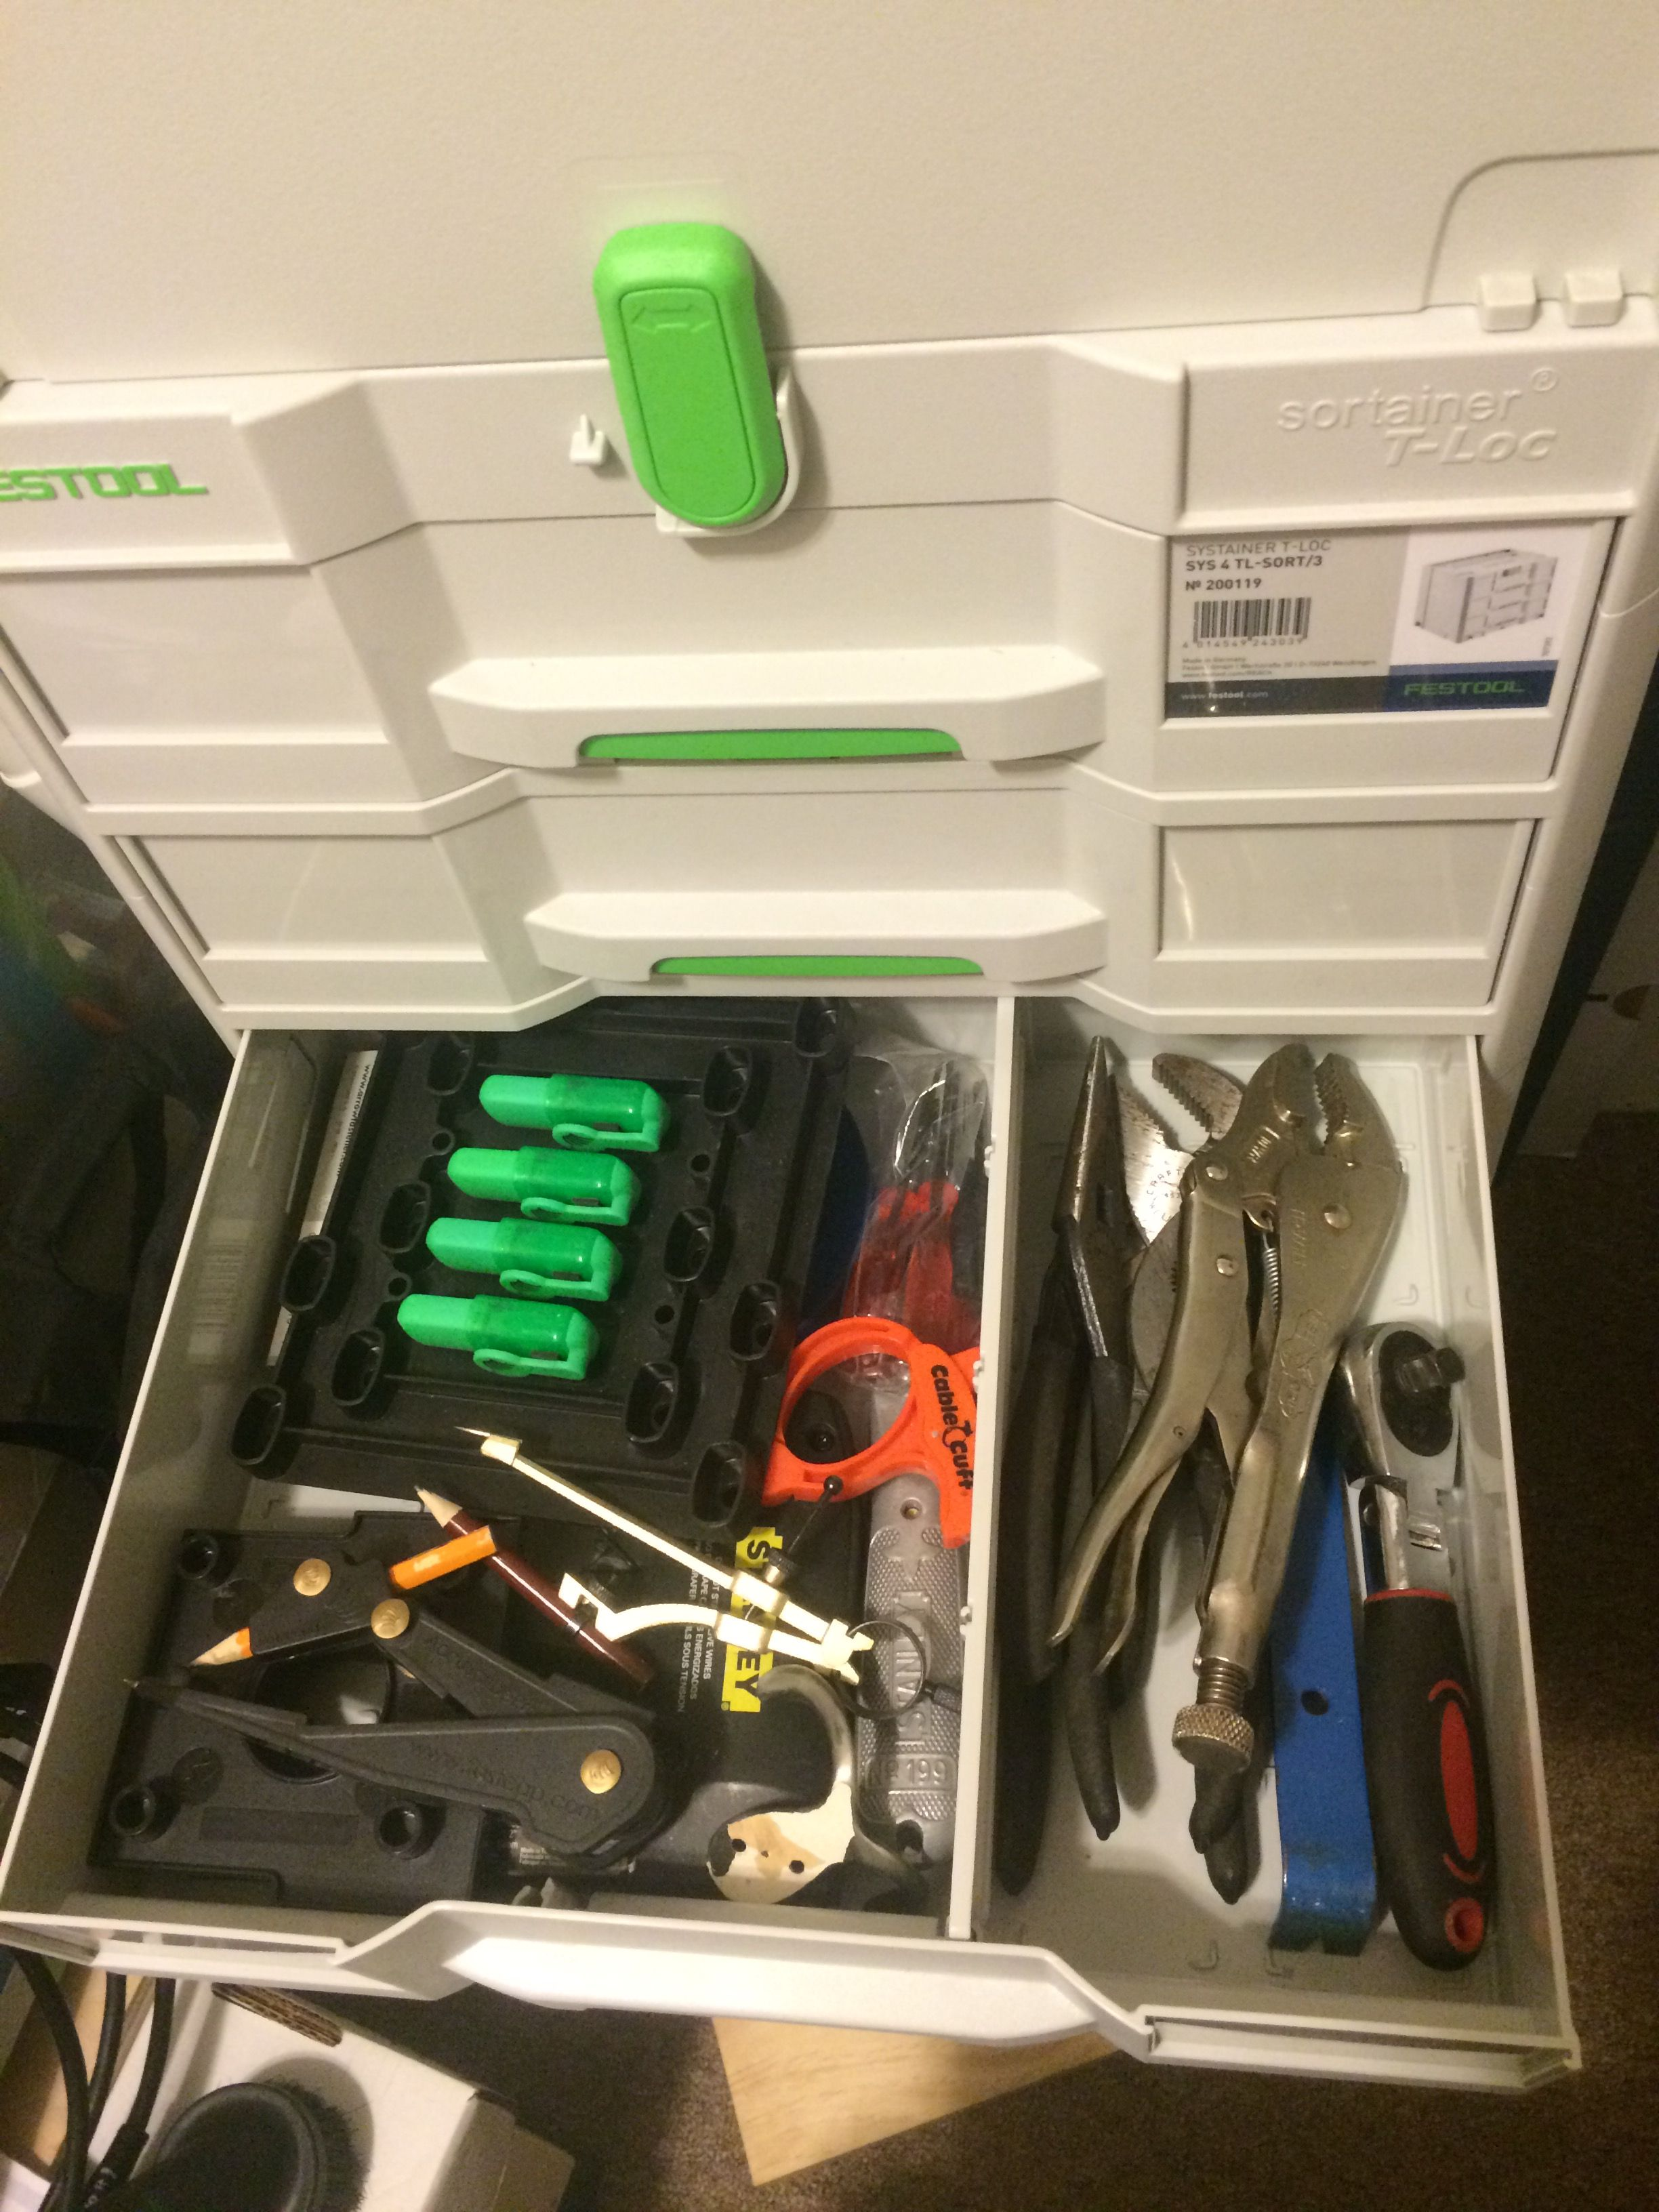 Sys 4 Tl Sort 3 Anyone Using For Hand Tools Tool Organization  # Muebles Sortimo